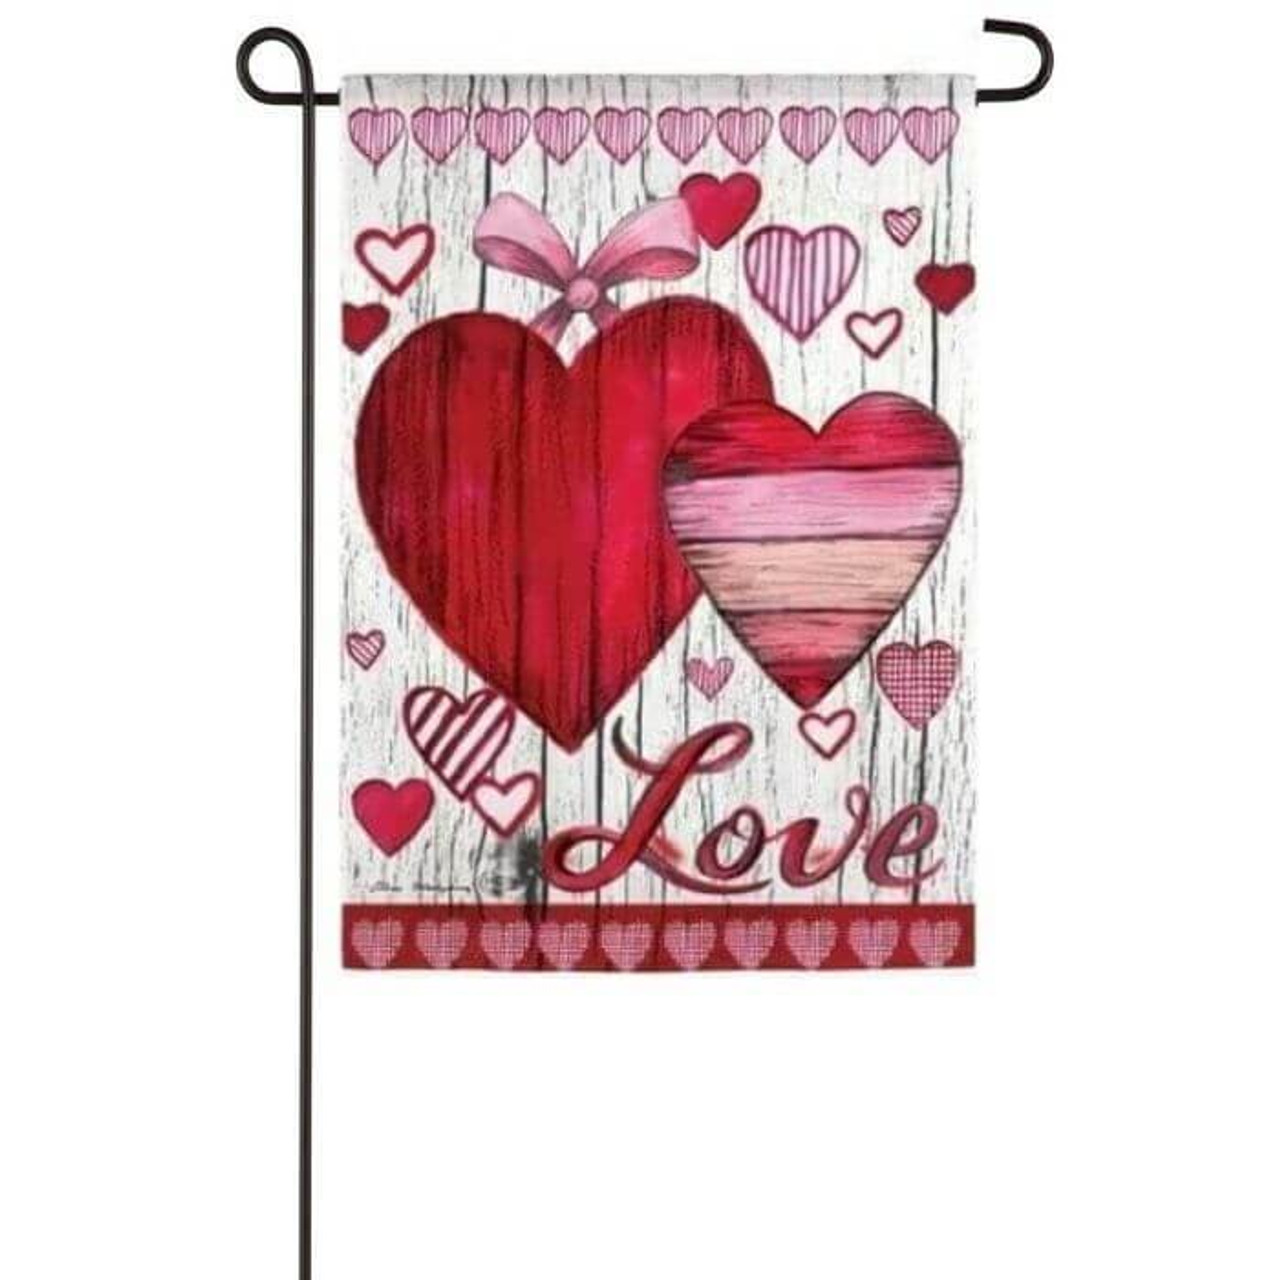 Two red and pink illustrated hearts with a white wooden fence background. There are multiple red hearts all around the  background. The word Love written in red at the bottom in cursive. It is a vertical hanging garden flag. The flag is 12 inches wide and 18 inches long.